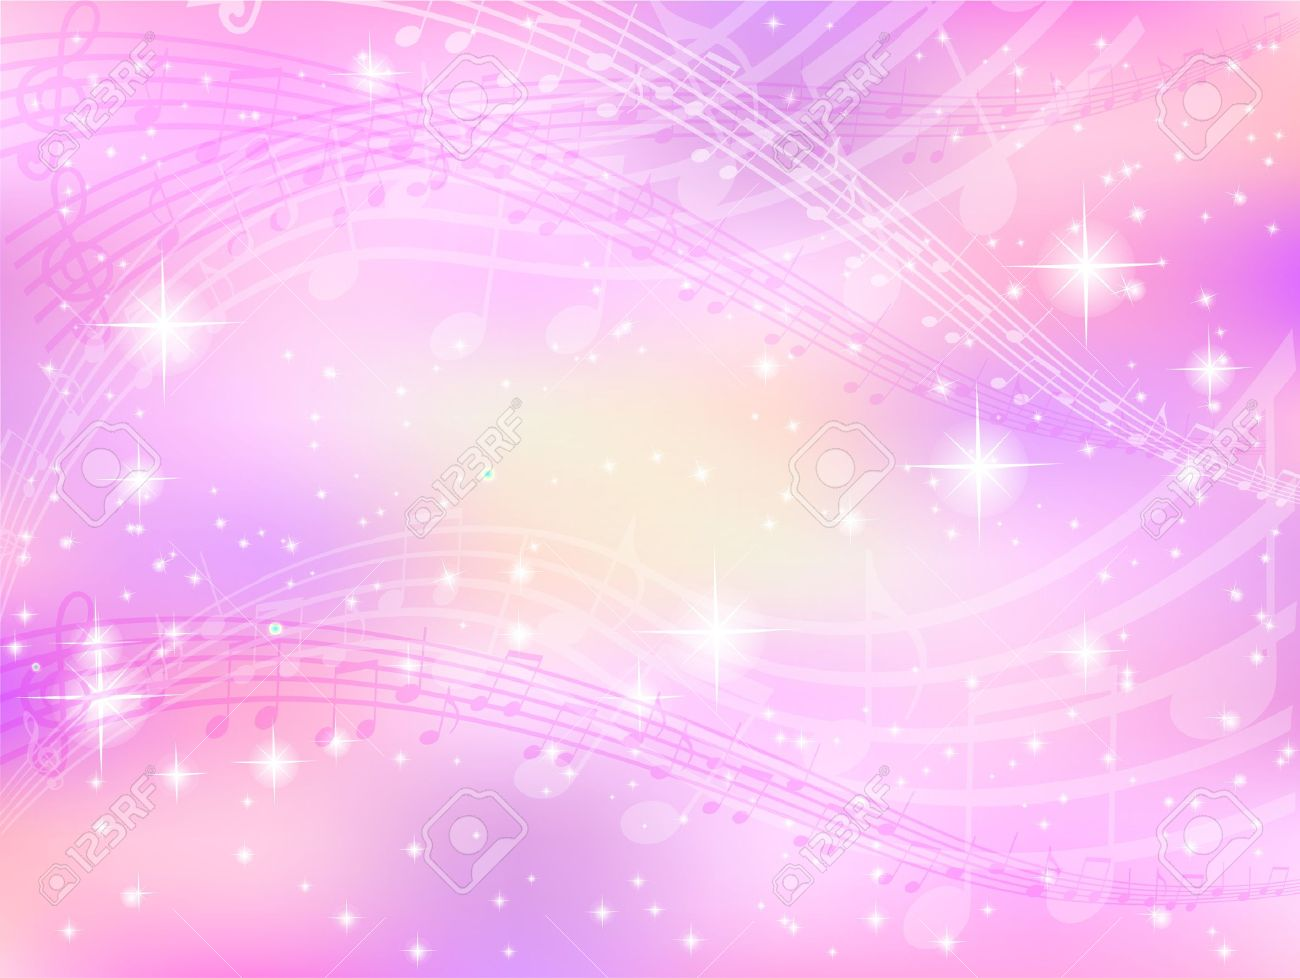 Background music notes pink